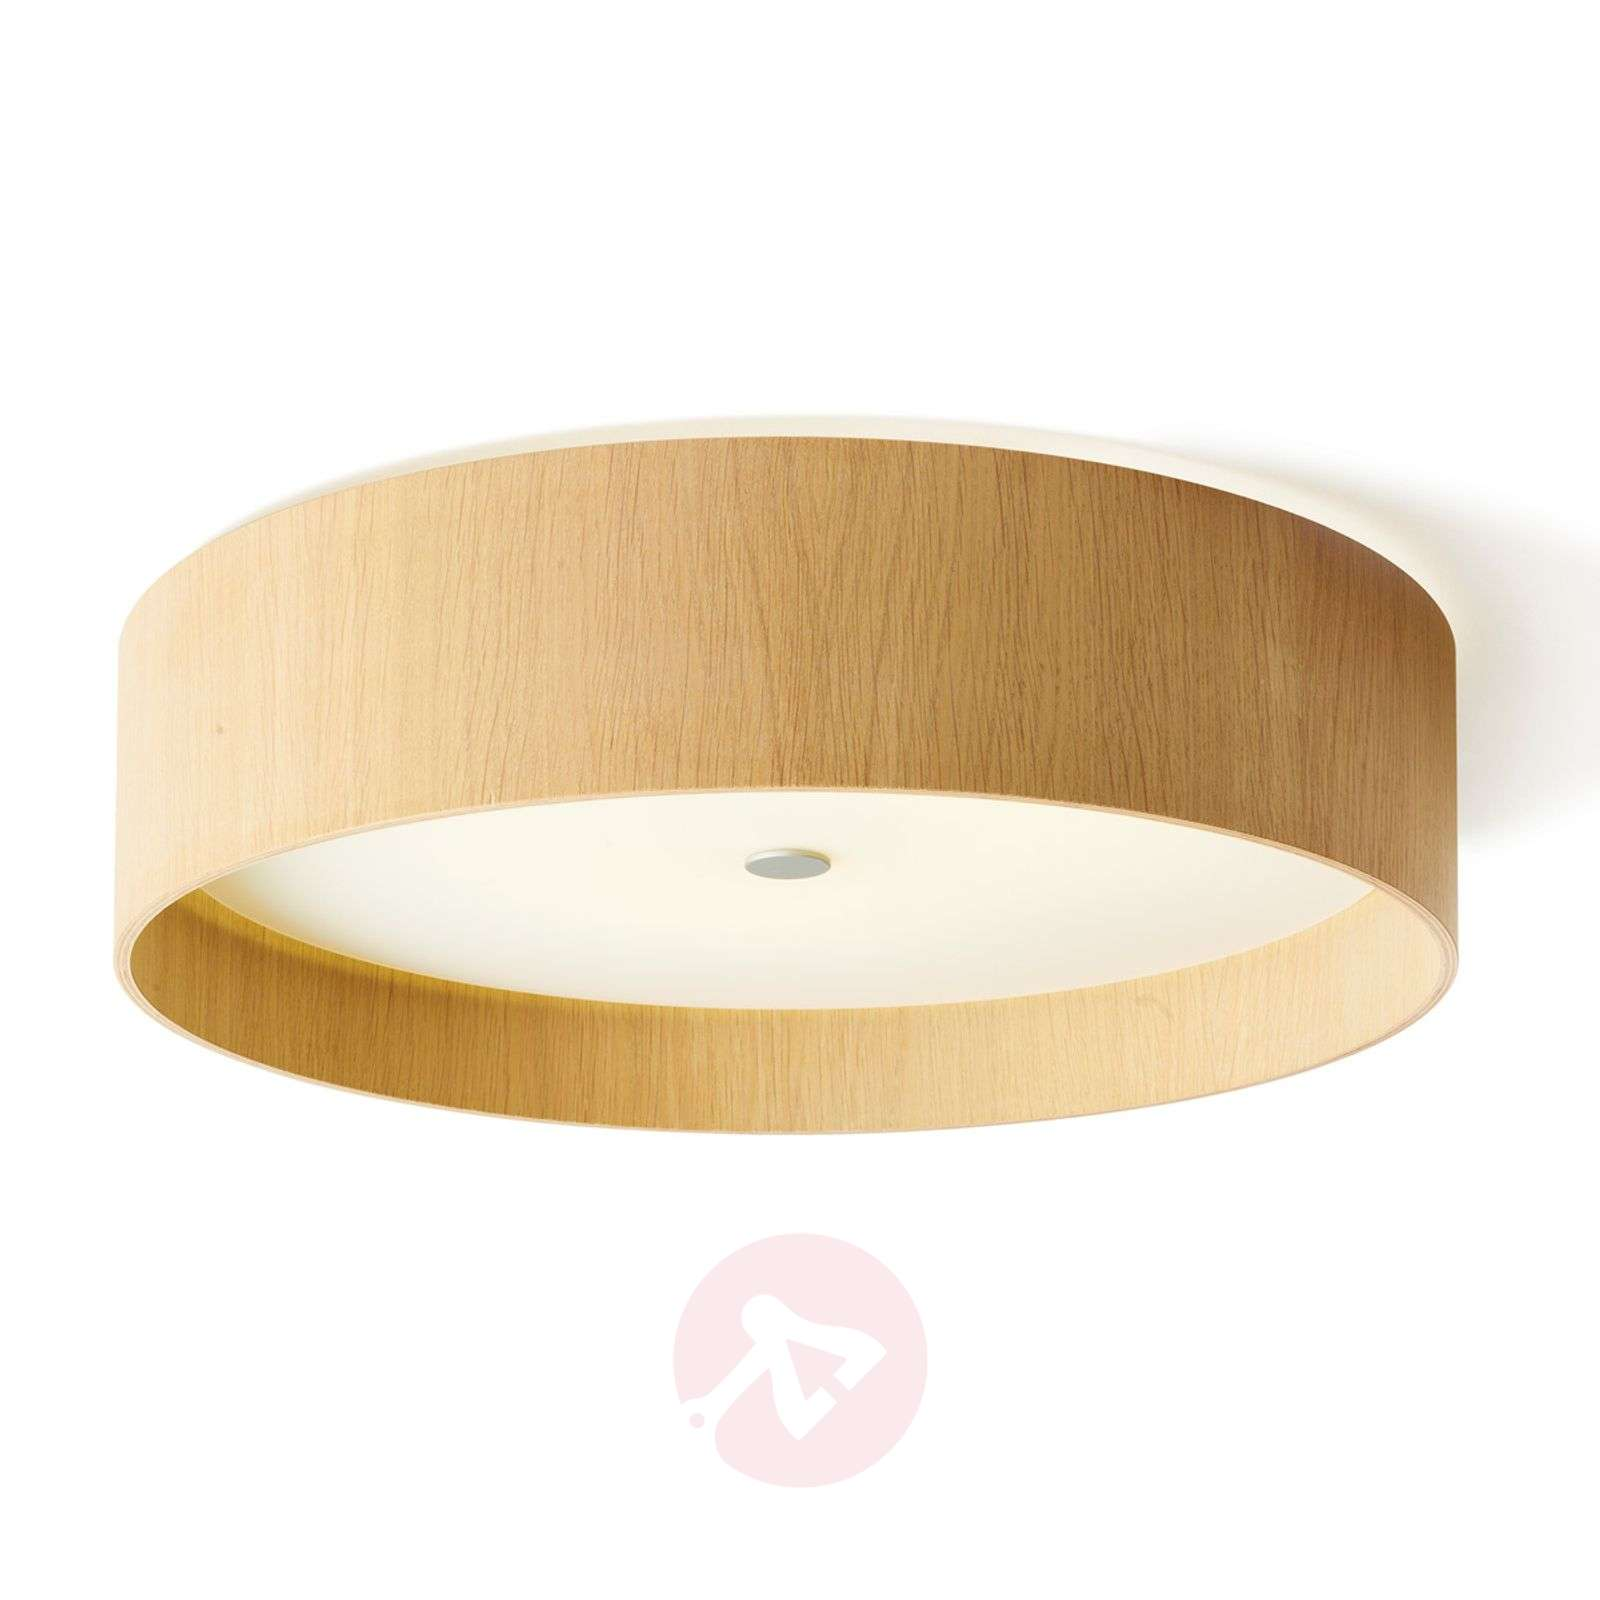 Lámpara LED de techo Lara wood circular roble 55cm-2600506-01